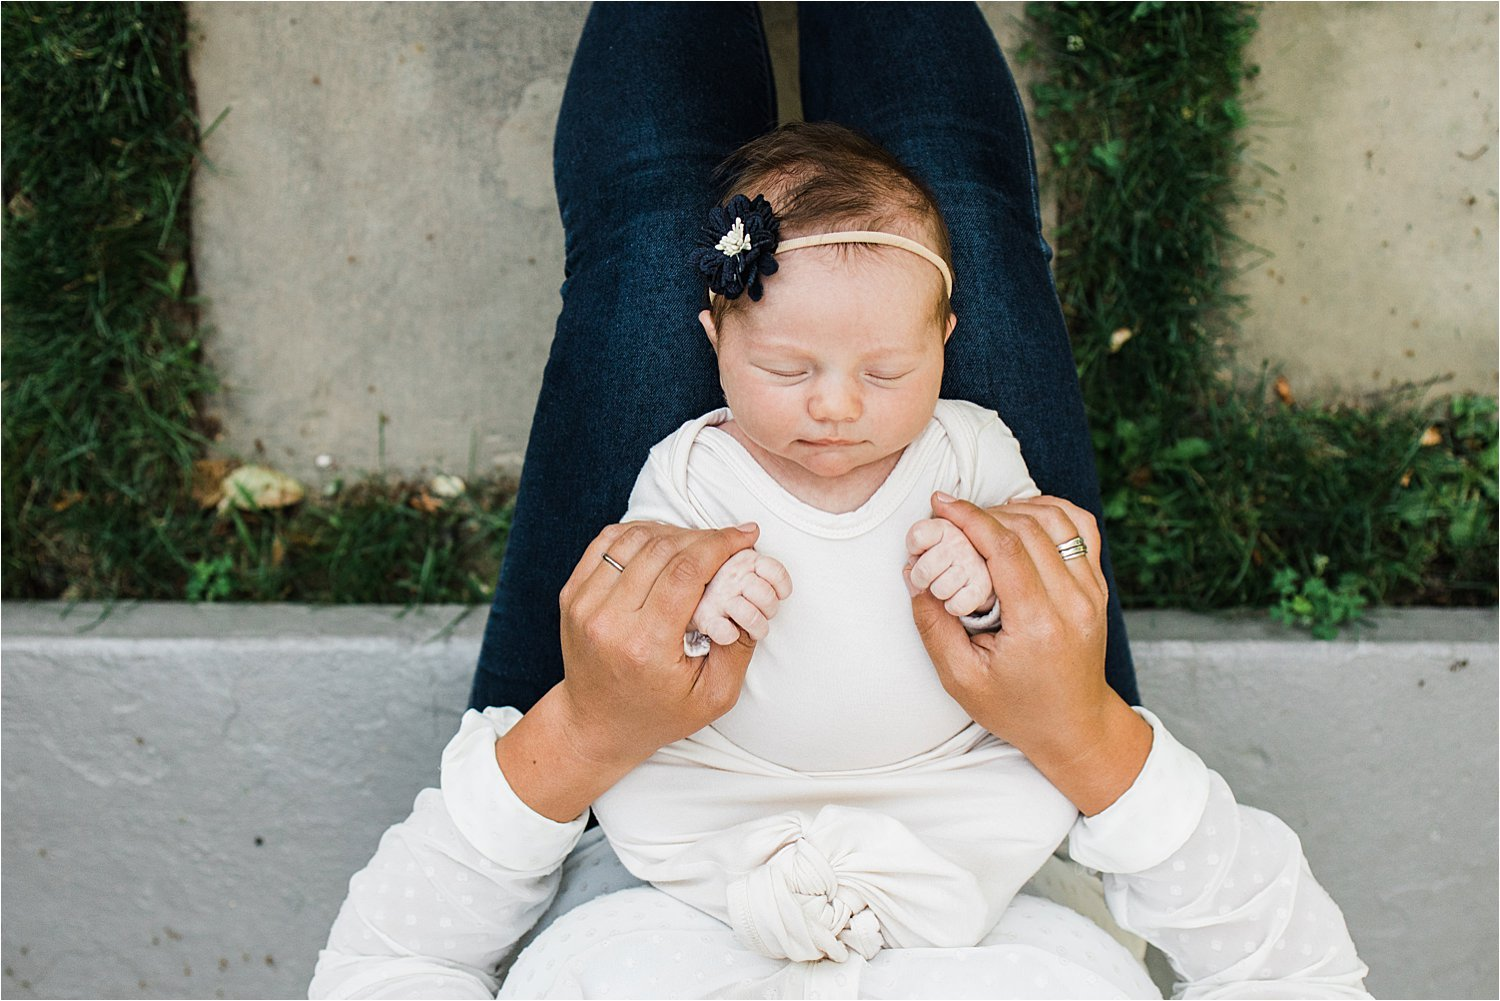 outdoor and natural newborn photo during covid-19 pandemic